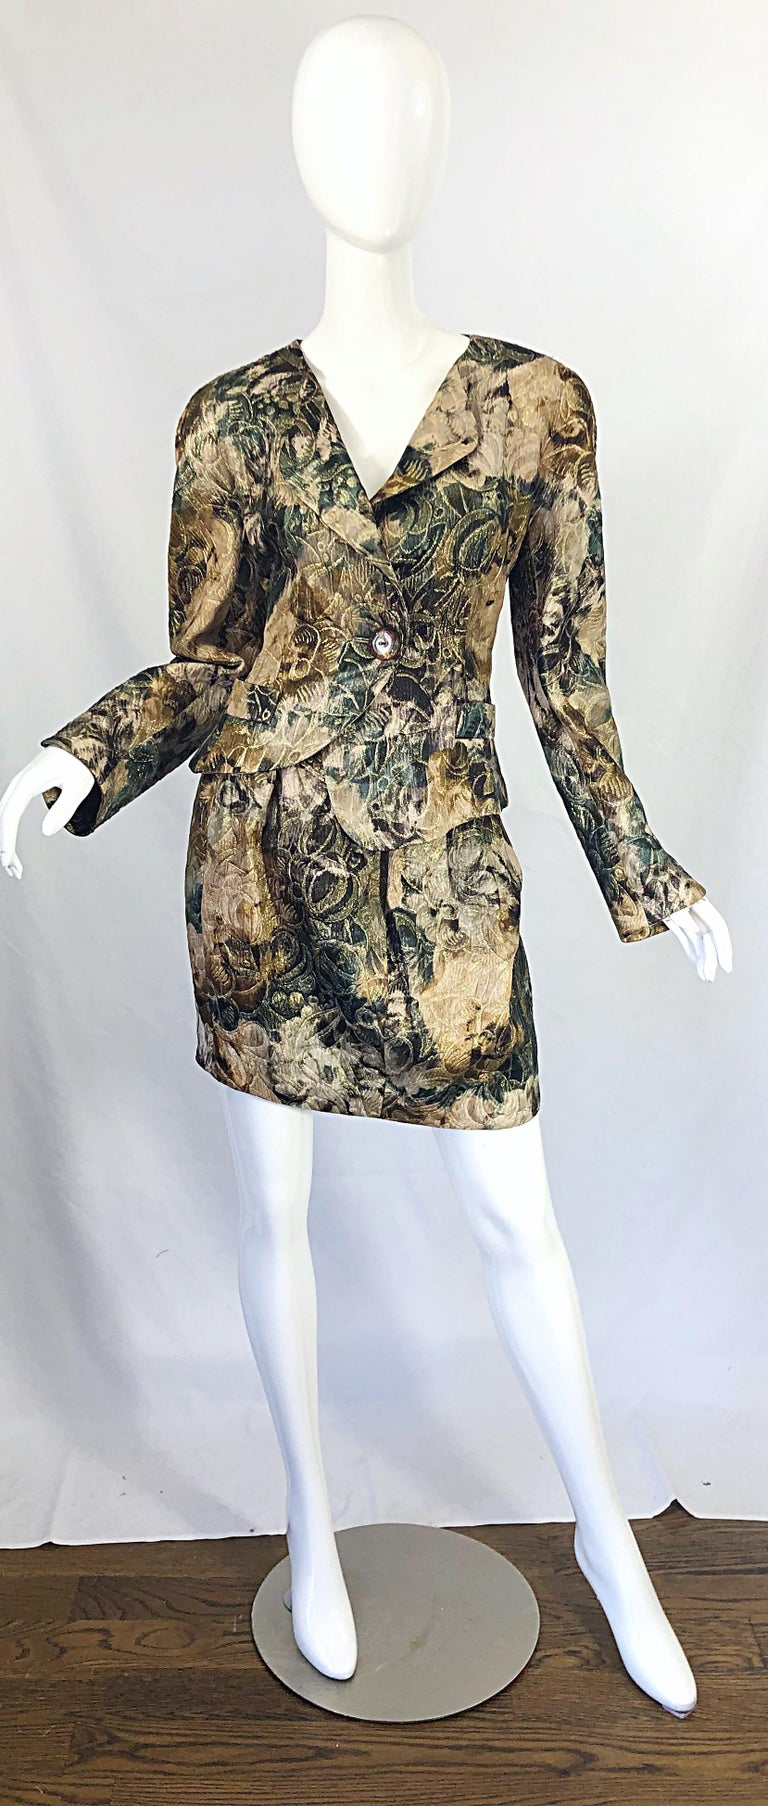 Avant Garde early 90s KRIZIA asymmetrical silk skirt suit ! Features warm hues of hunter green, brown, tan and ivory throughout. Asymmetrical hem on the jacket and each collar. Single button closure with snap. High waisted mini skirt has hidden